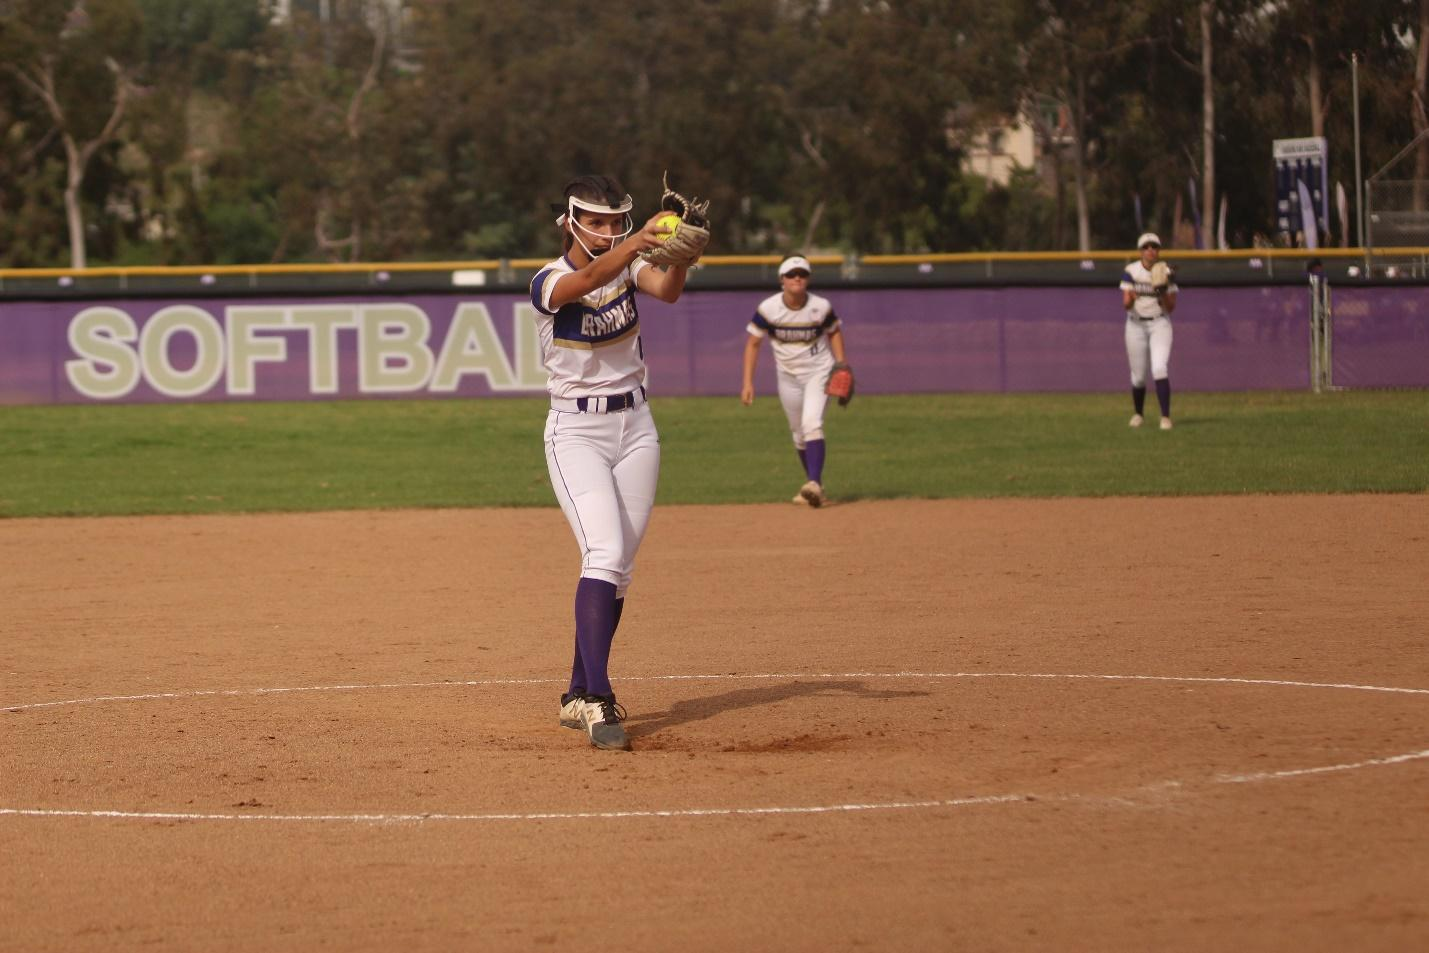 Sophomore Miranda Montes pitches for DBHS in the 5-1 loss to Chino.